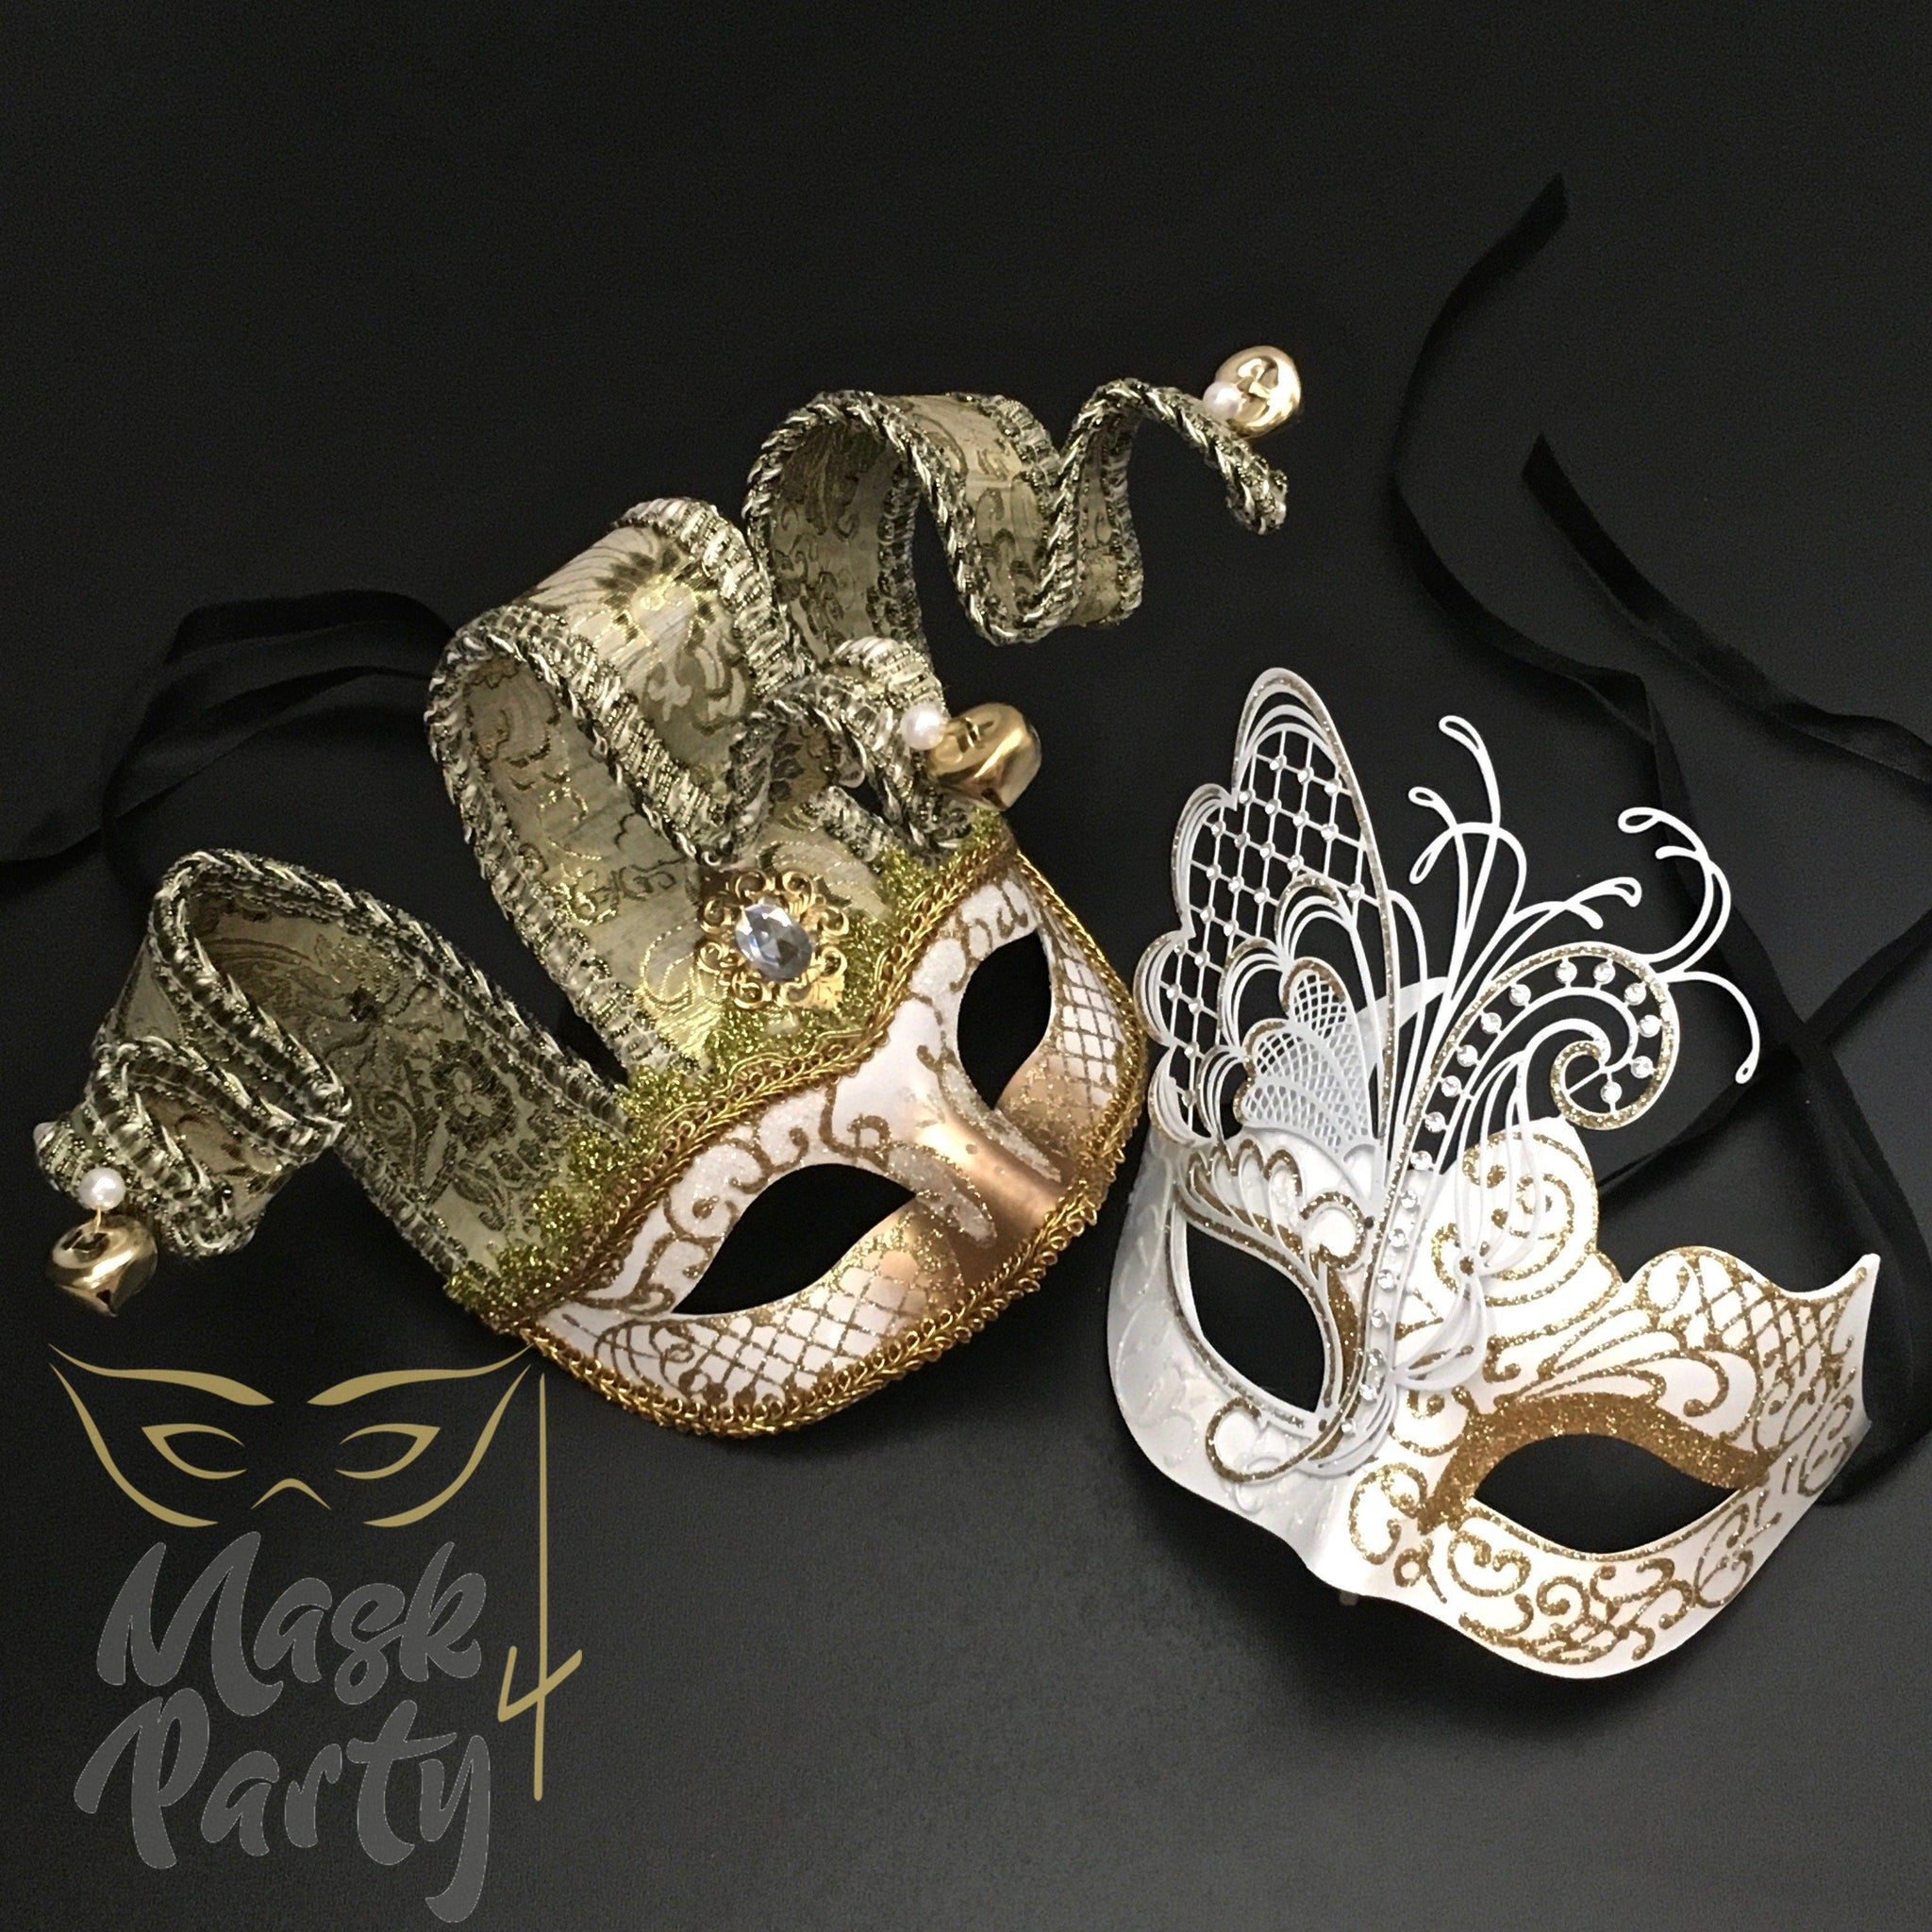 Masquerade Masks - Jolly Jester & Venetian Metal - White/Gold - Mask4Party